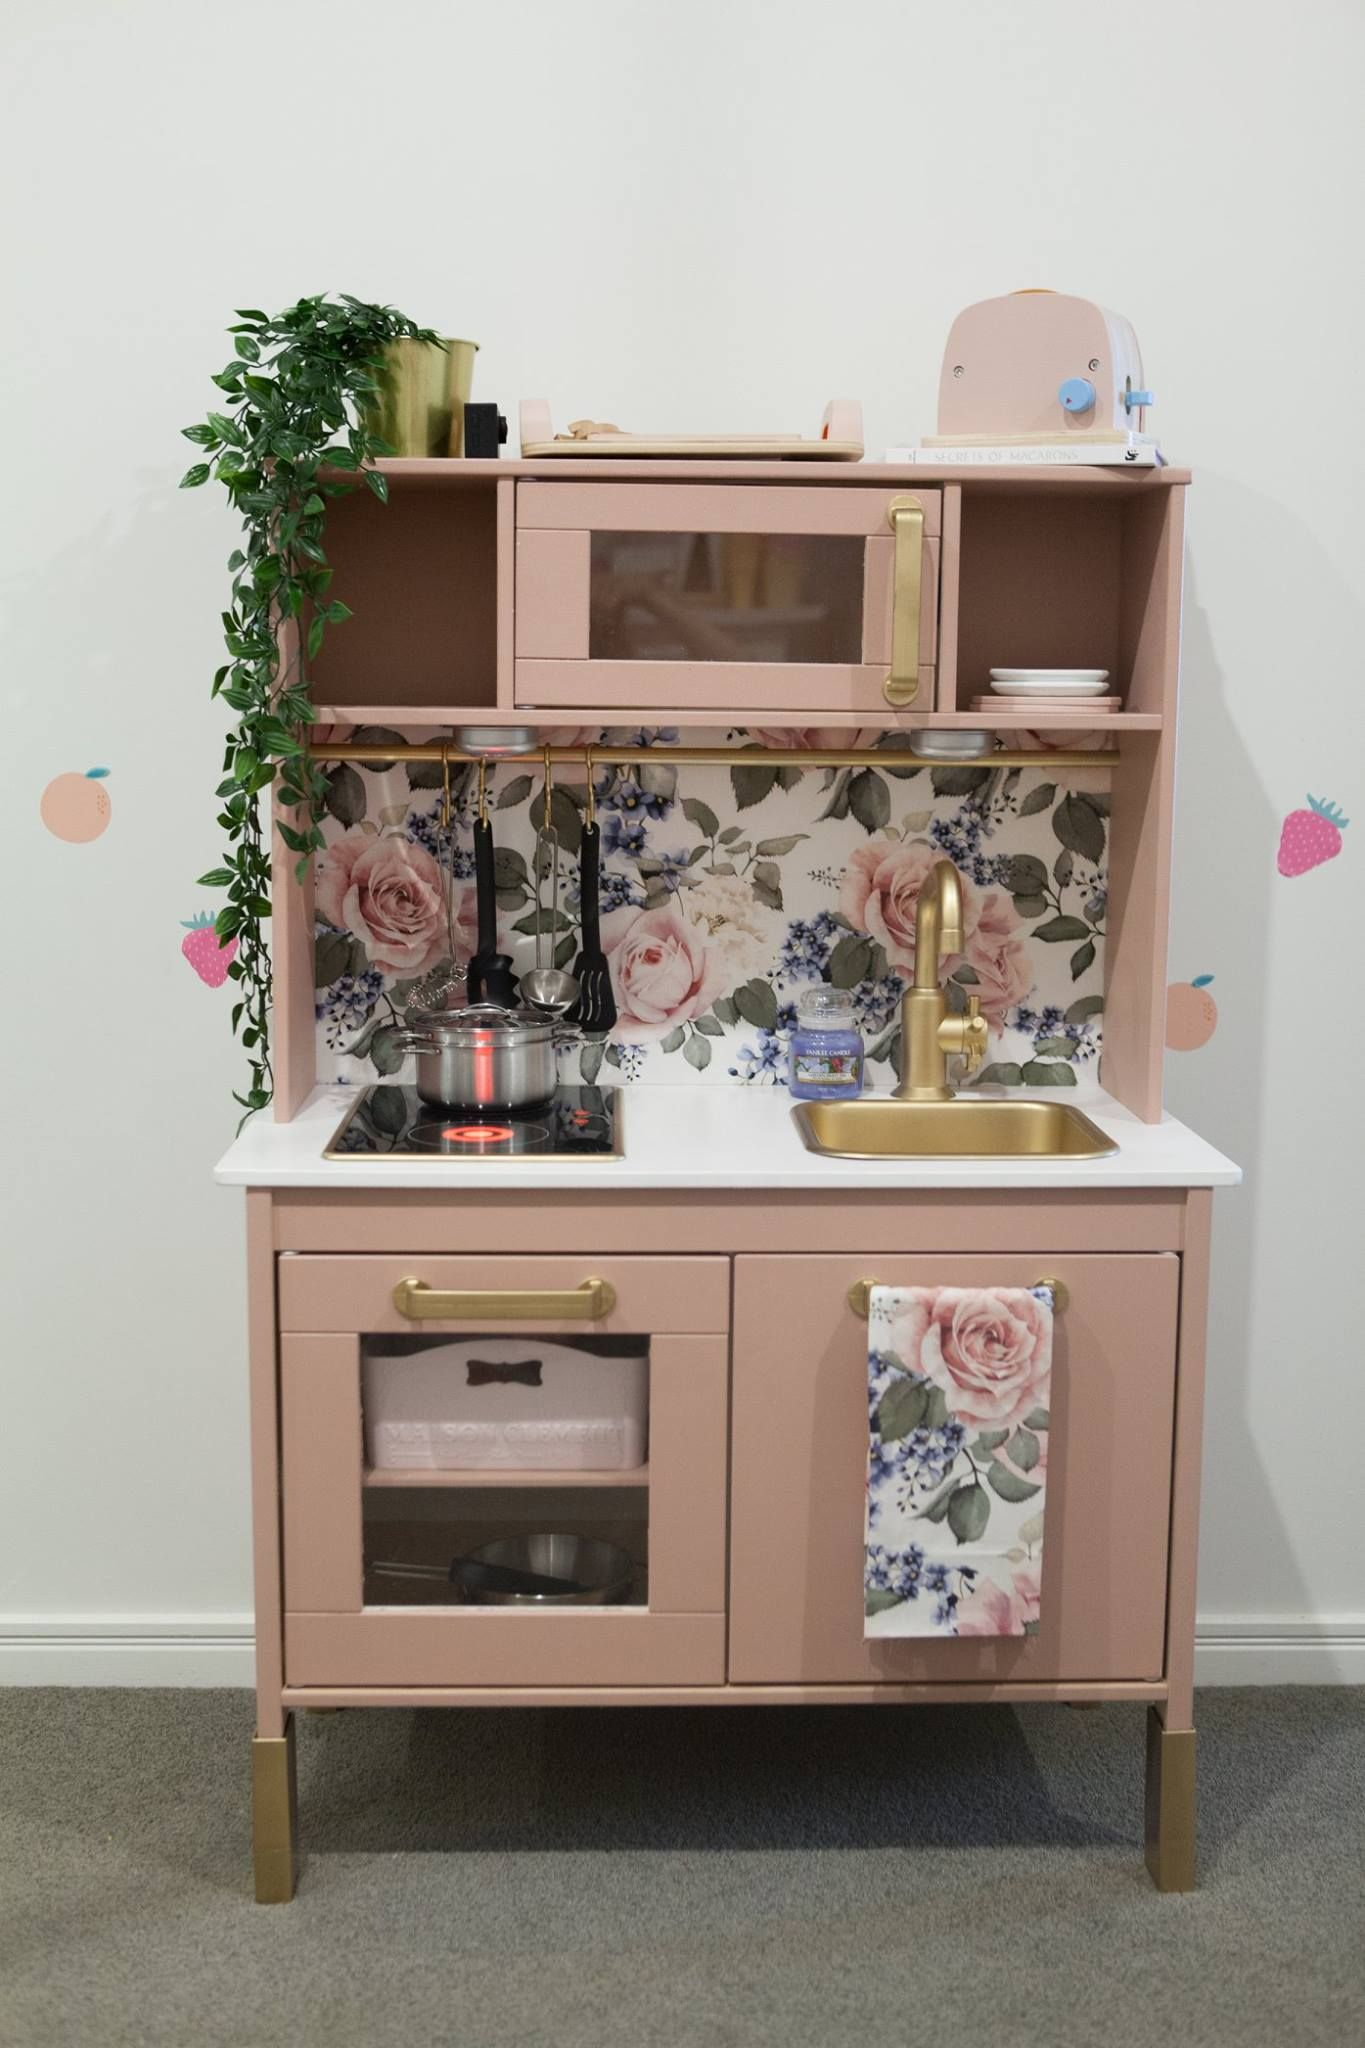 ikea kids play kitchen hack diy anna rose pinterest. Black Bedroom Furniture Sets. Home Design Ideas